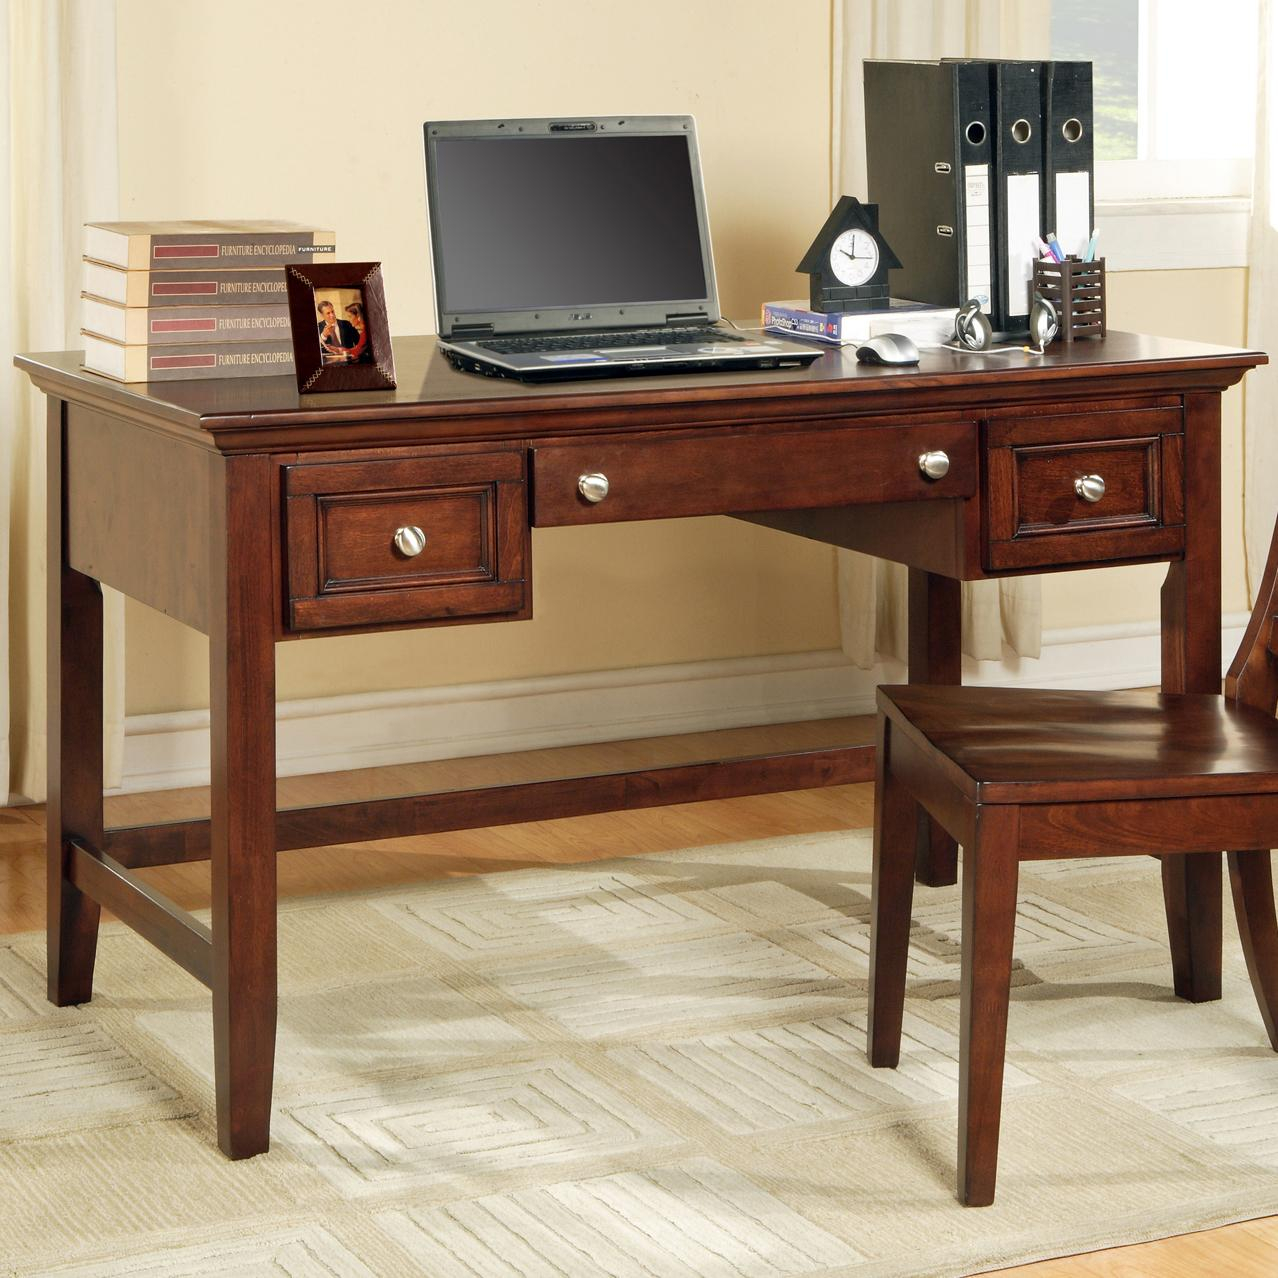 Star Oslo Os150dc Transitional 2 Drawer Writing Desk With